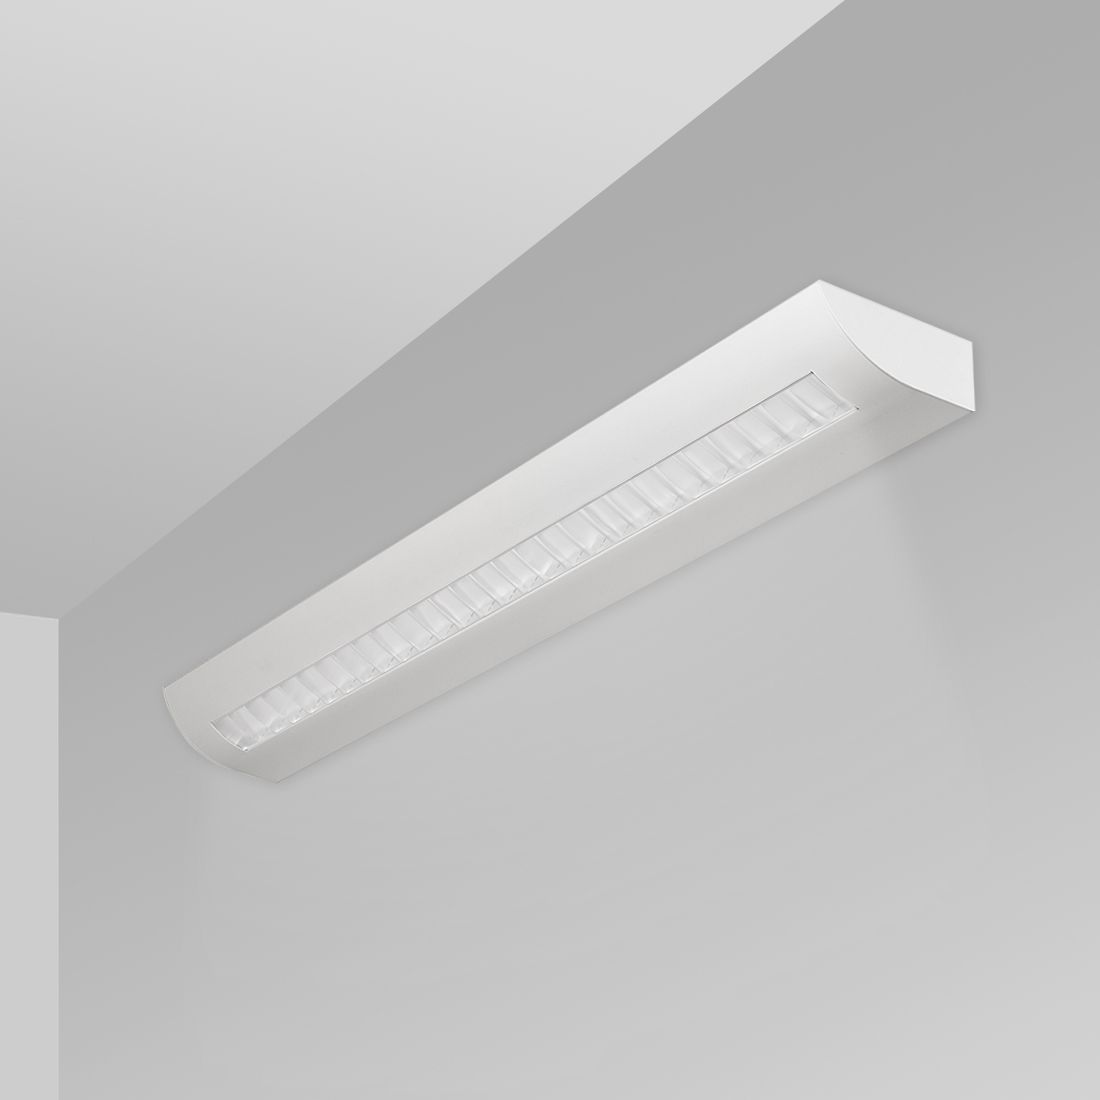 alcon lighting 11112 watson architectural led modern linear wall mount direct indirect light fixture